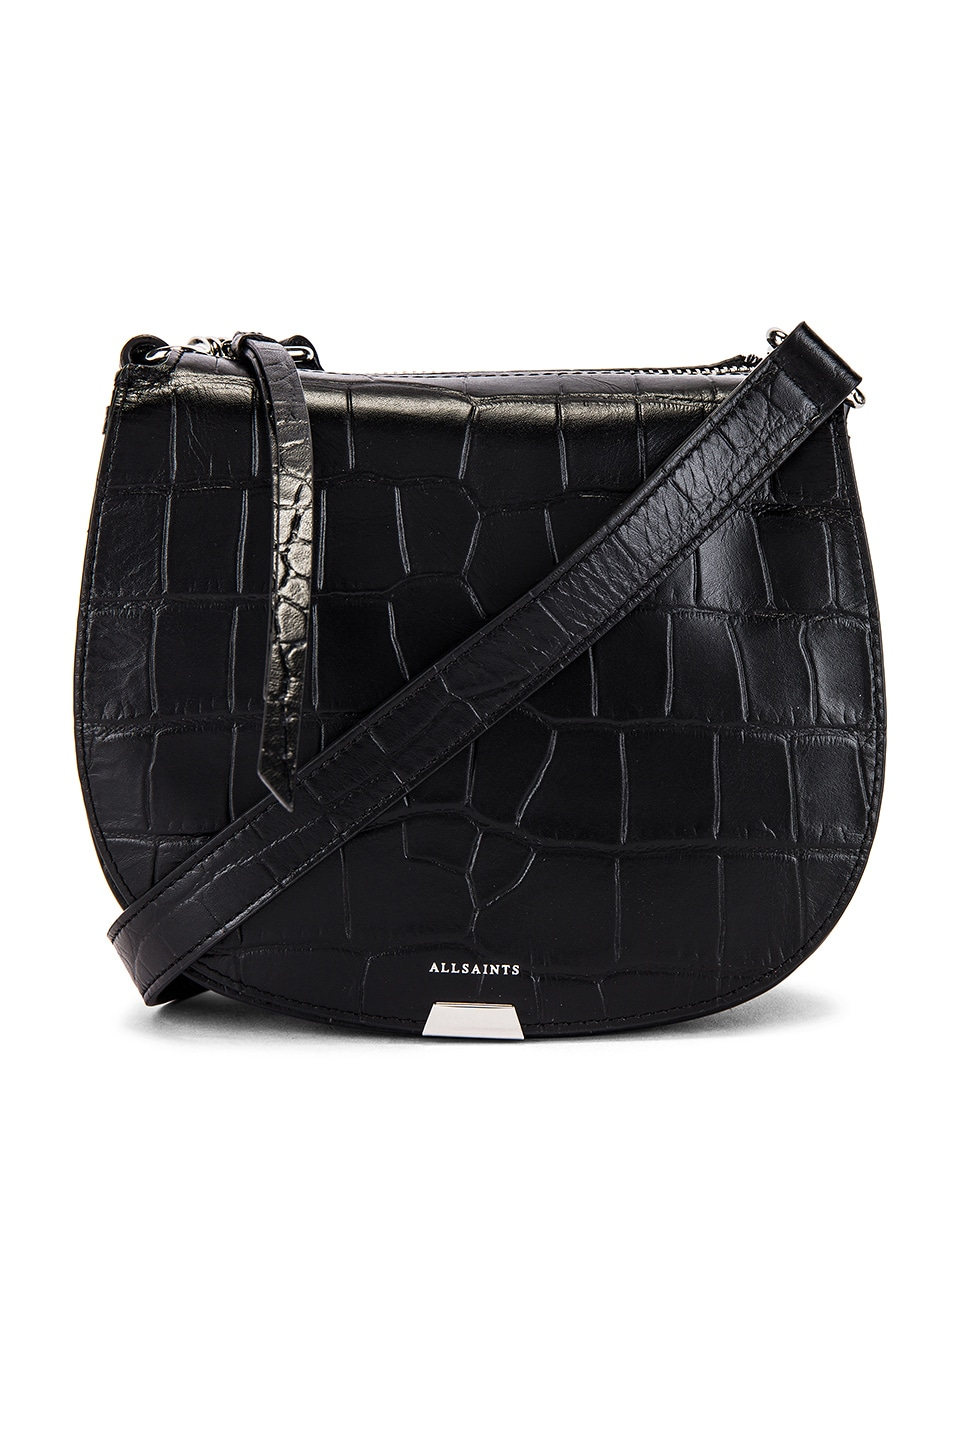 ALLSAINTS Polly Small Round Crossbody in Black